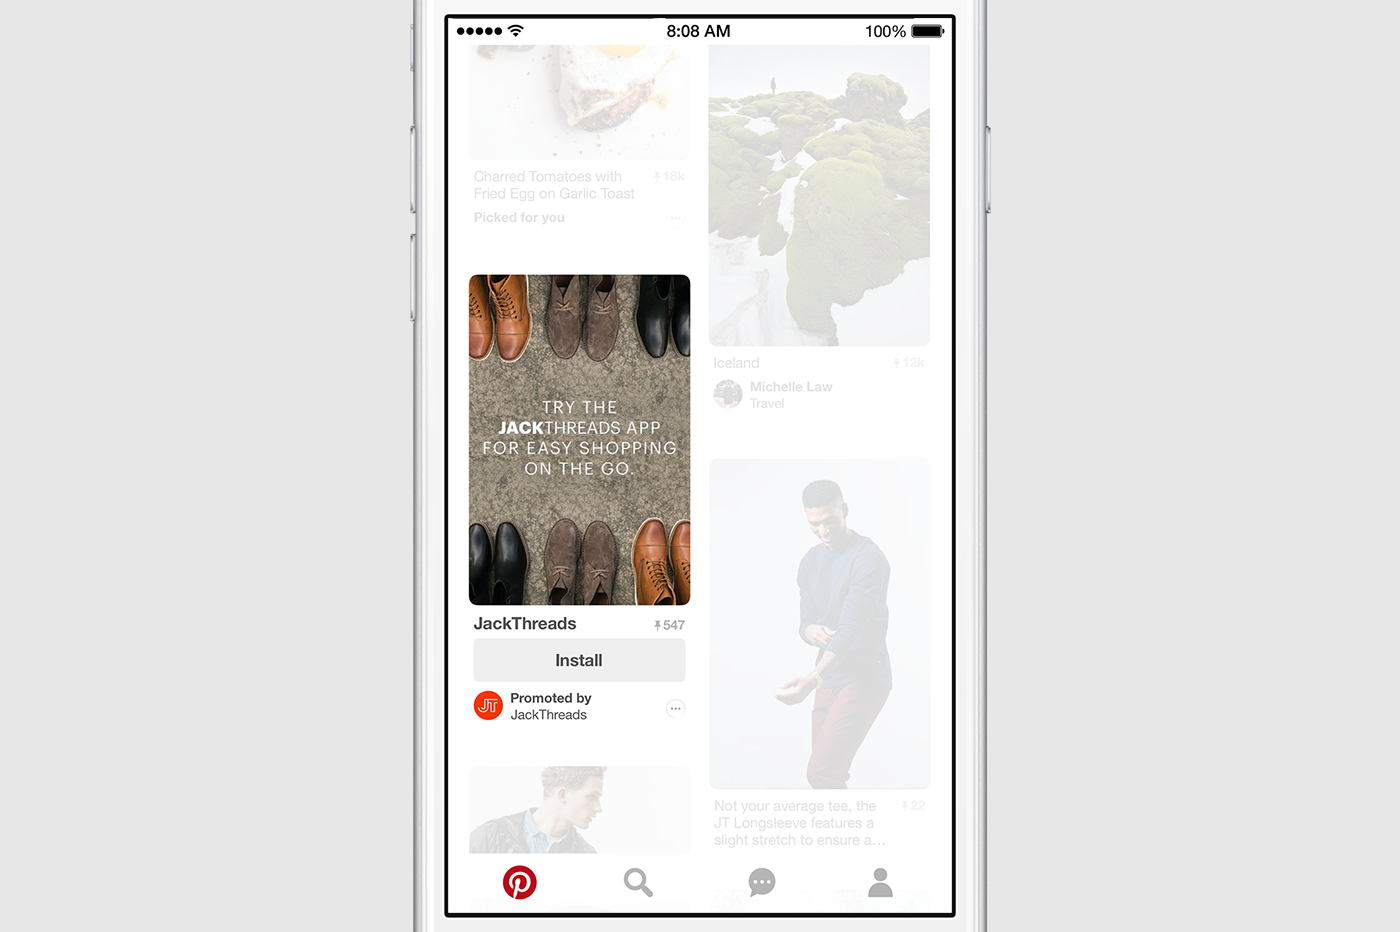 Pinterest Announces New Ad Options, Including One-Tap Pins | Social Media Today